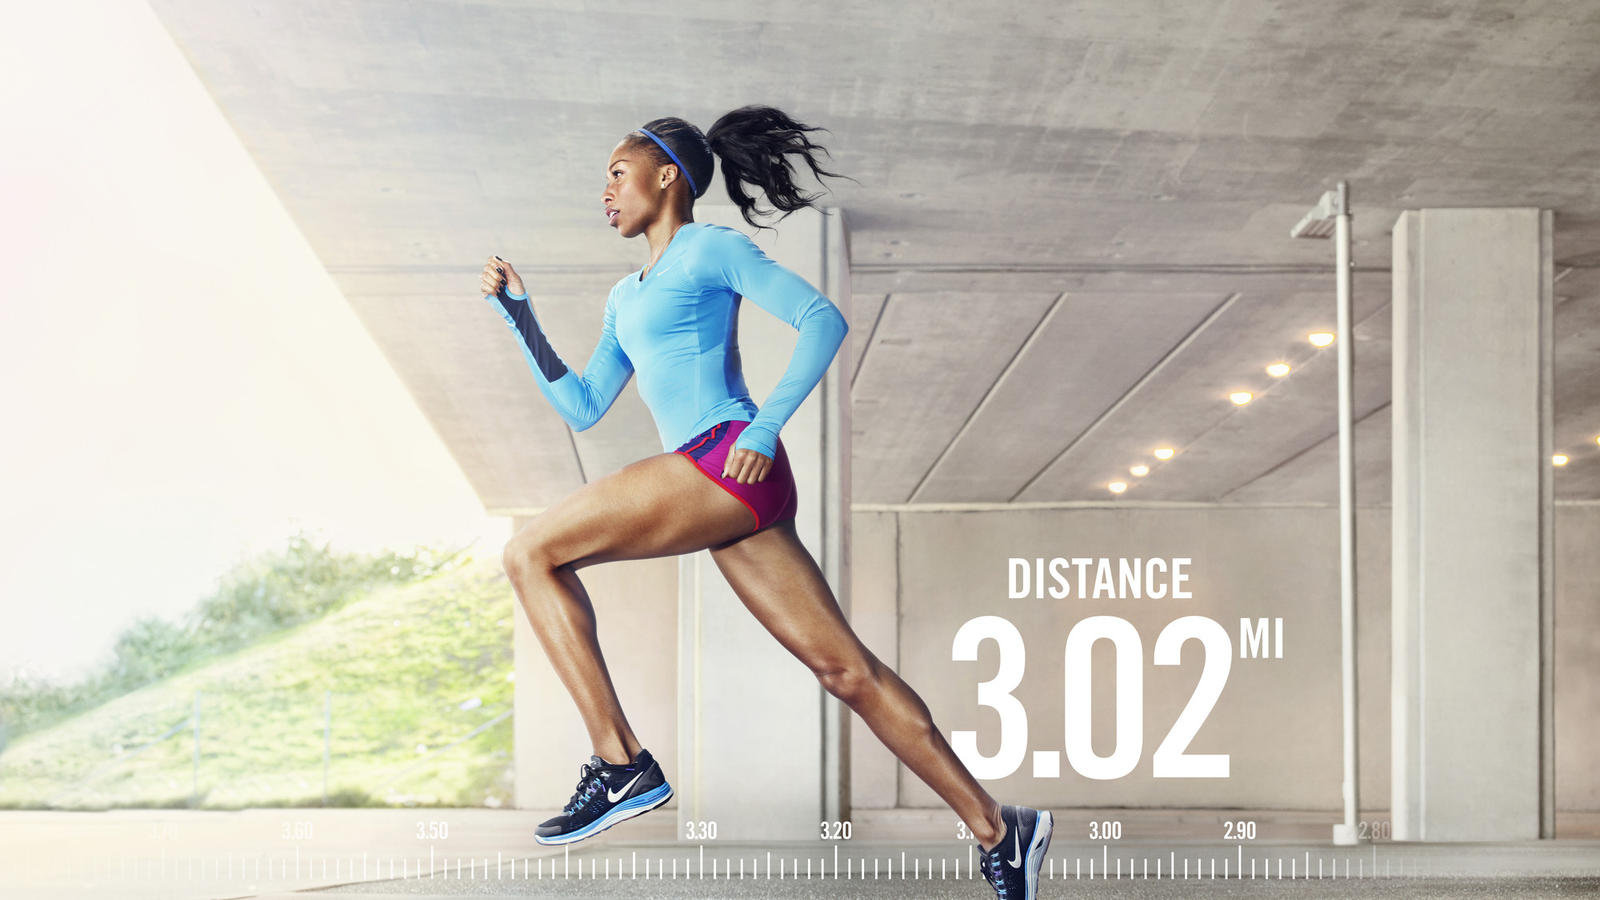 Running Jogging App The New Nike Running Experience Smarter More Social More